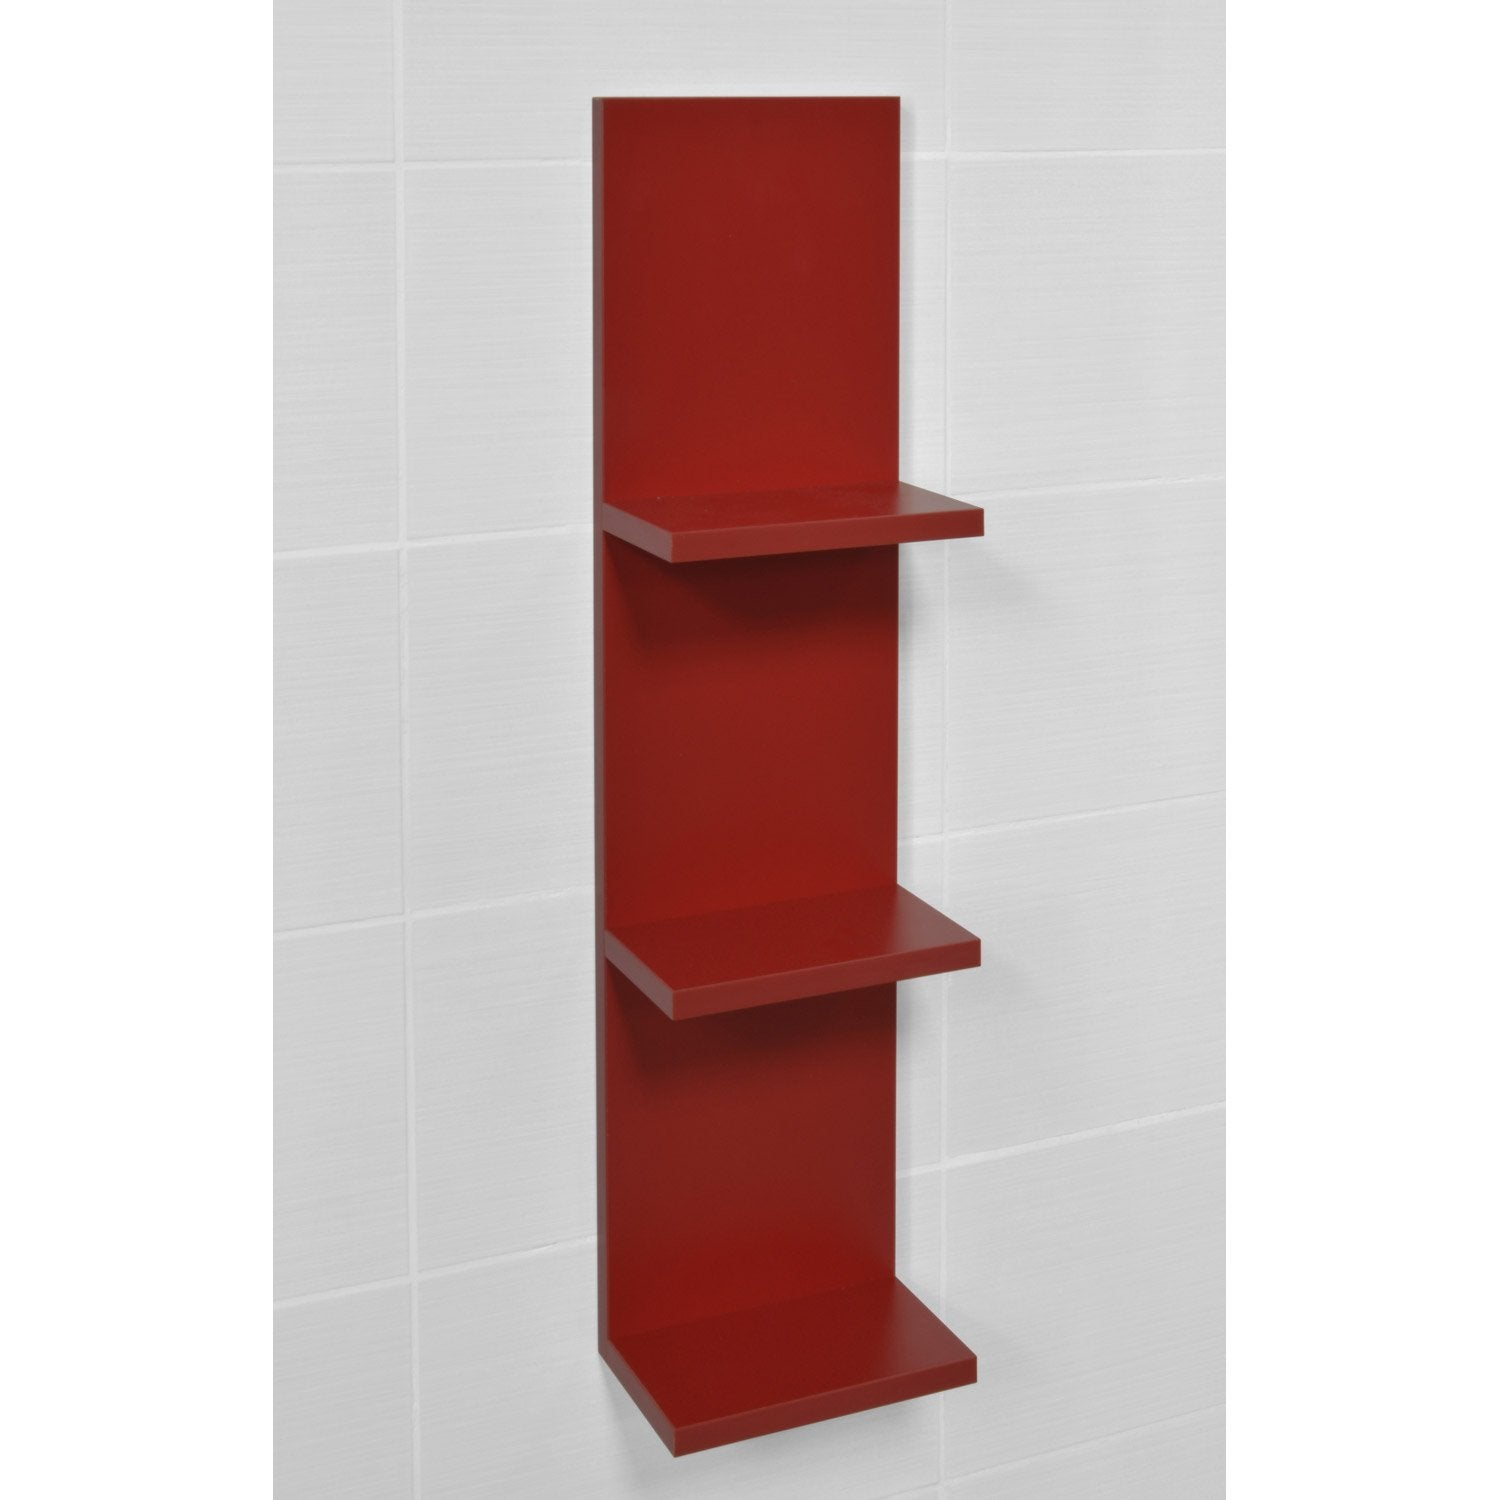 Etag re de wc x x cm rouge coin d 39 o for Etagere de coin salle de bain